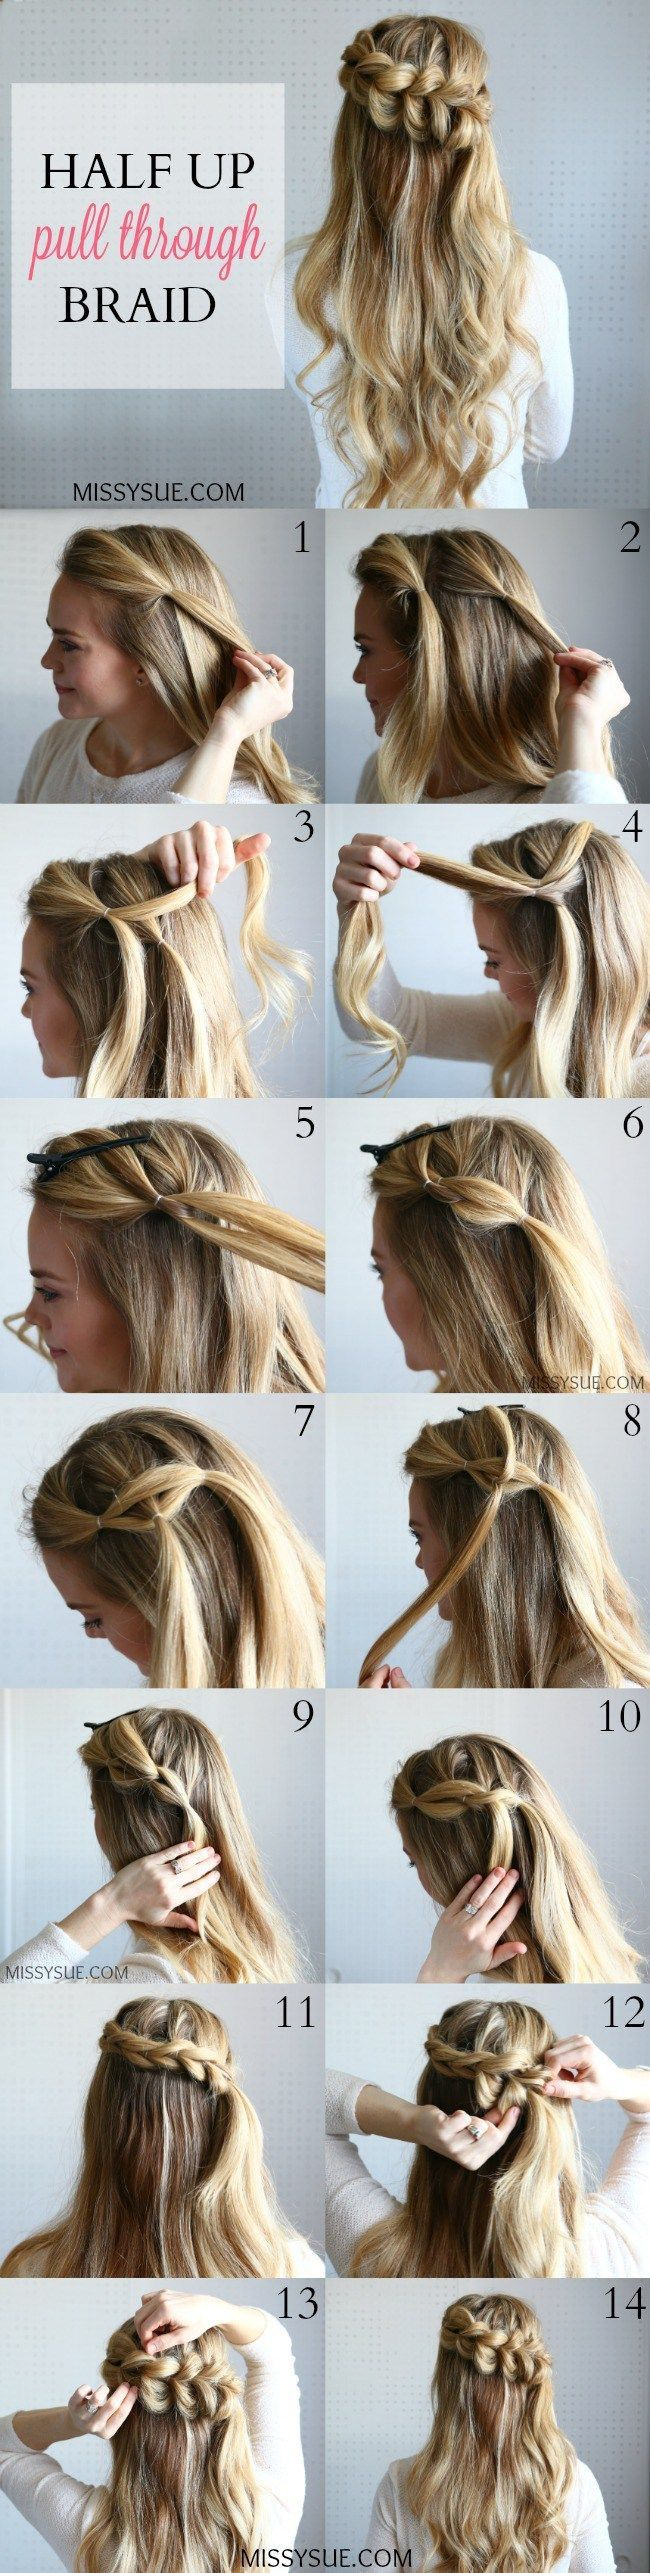 Half up pullthrough braid hair pinterest hair style hair